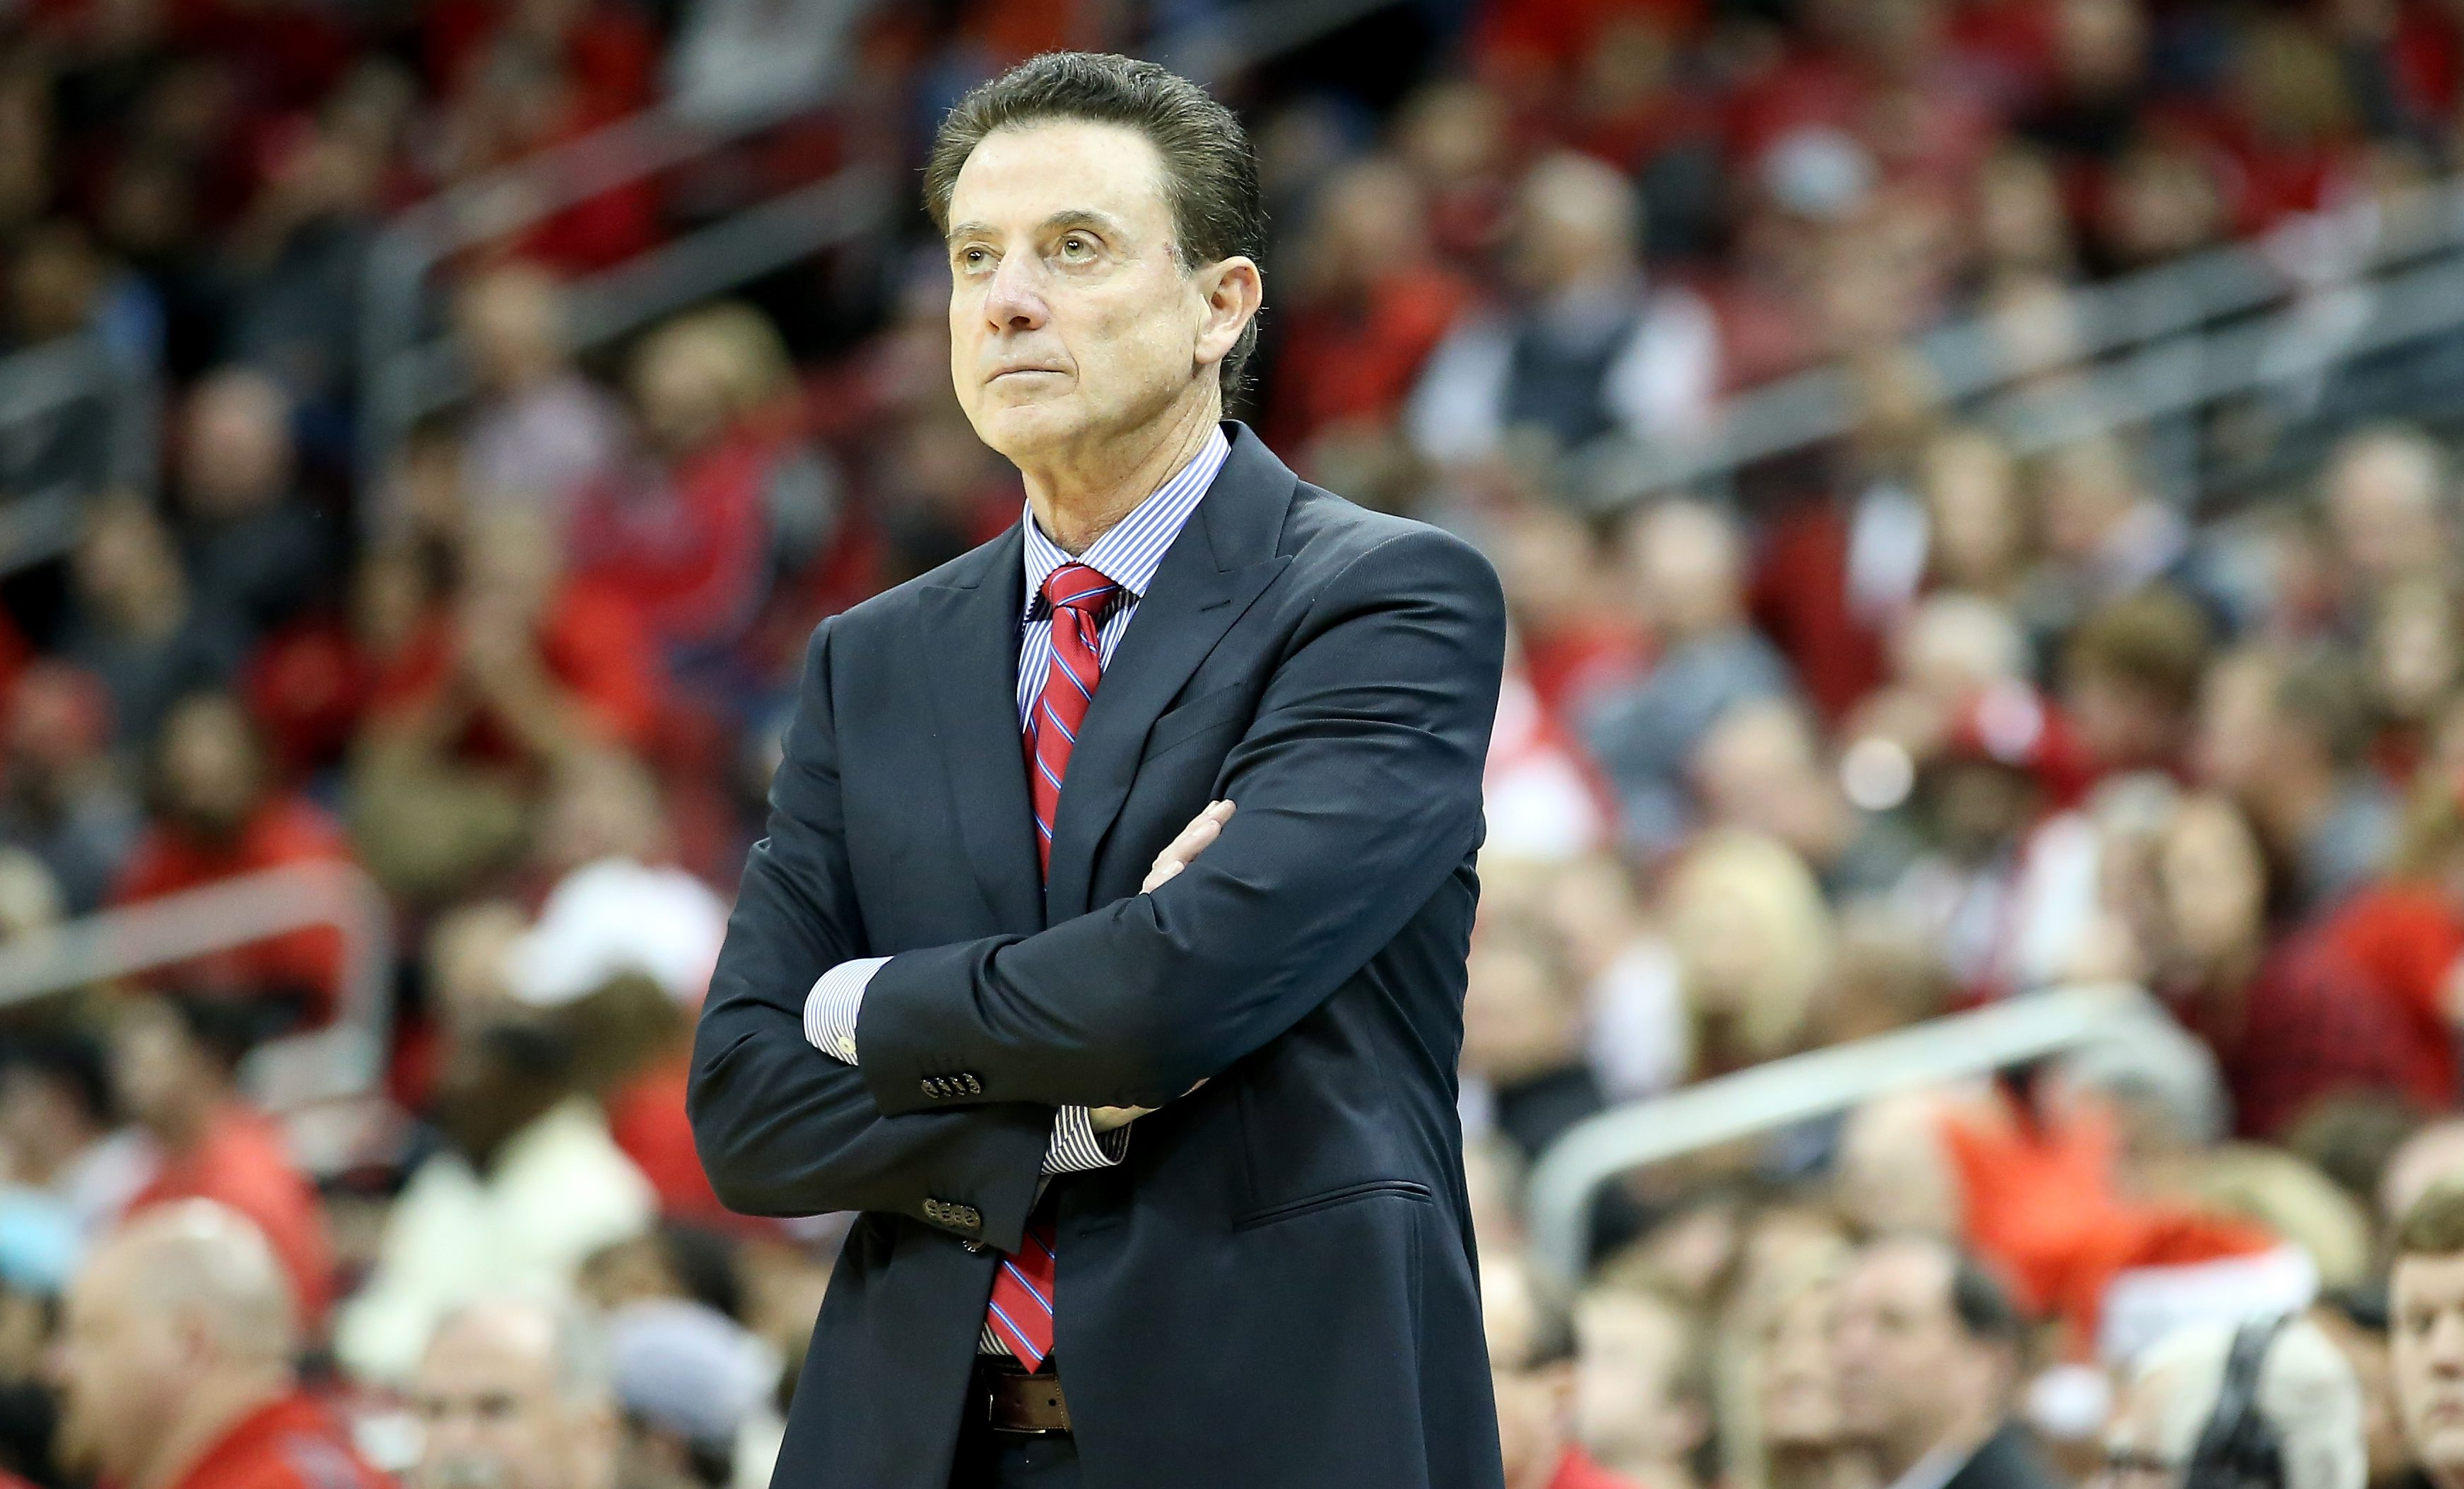 LOUISVILLE, KY - DECEMBER 10:  Rick Pitino the head coach of the Louisville Cardinals watches the action during the game against the Texas Southern Tigers at KFC YUM! Center on December 10, 2016 in Louisville, Kentucky.  (Photo by Andy Lyons/Getty Images)